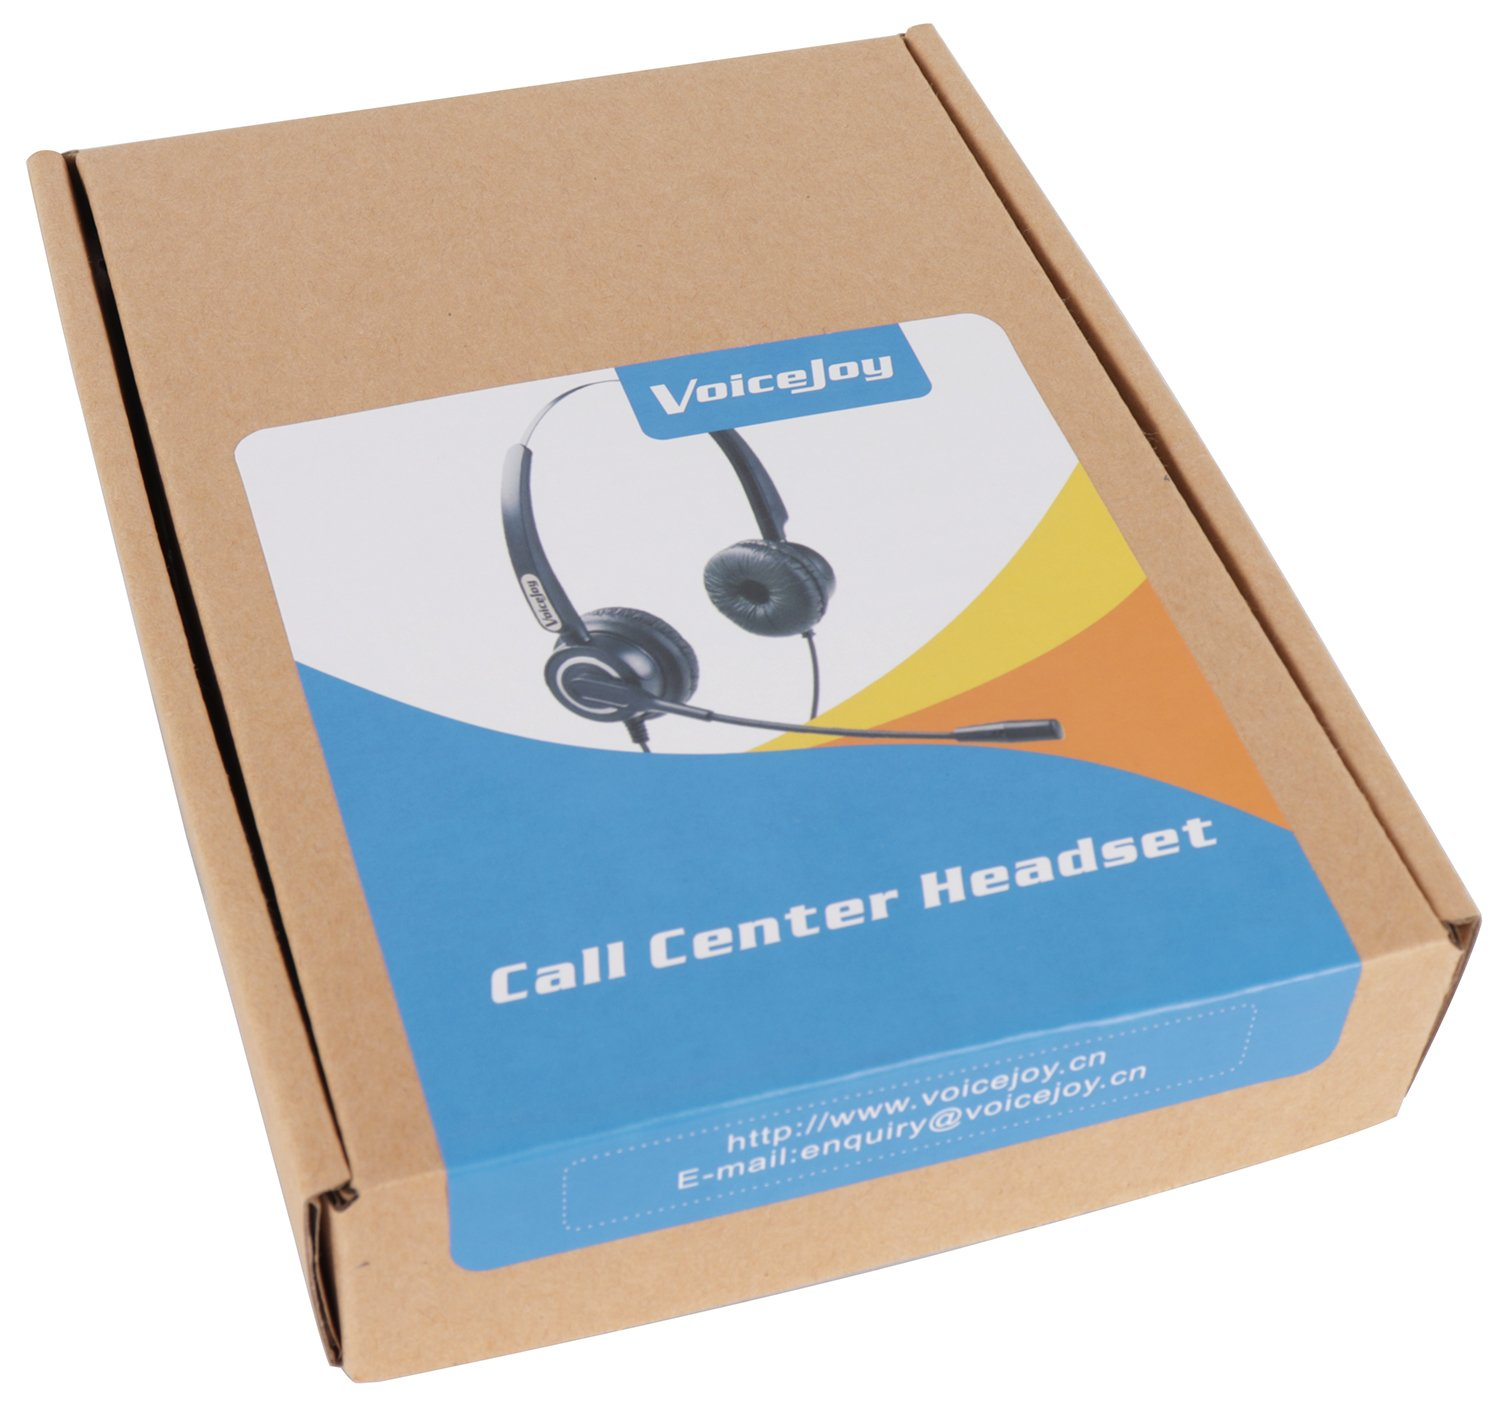 Corded RJ9 Phone Headset Binaural with Noise Canceling Microphone ONLY for  Cisco IP Phones: Such as 6941 7942 7971 8841, 8851, 8861,8945, 8961, 9951,